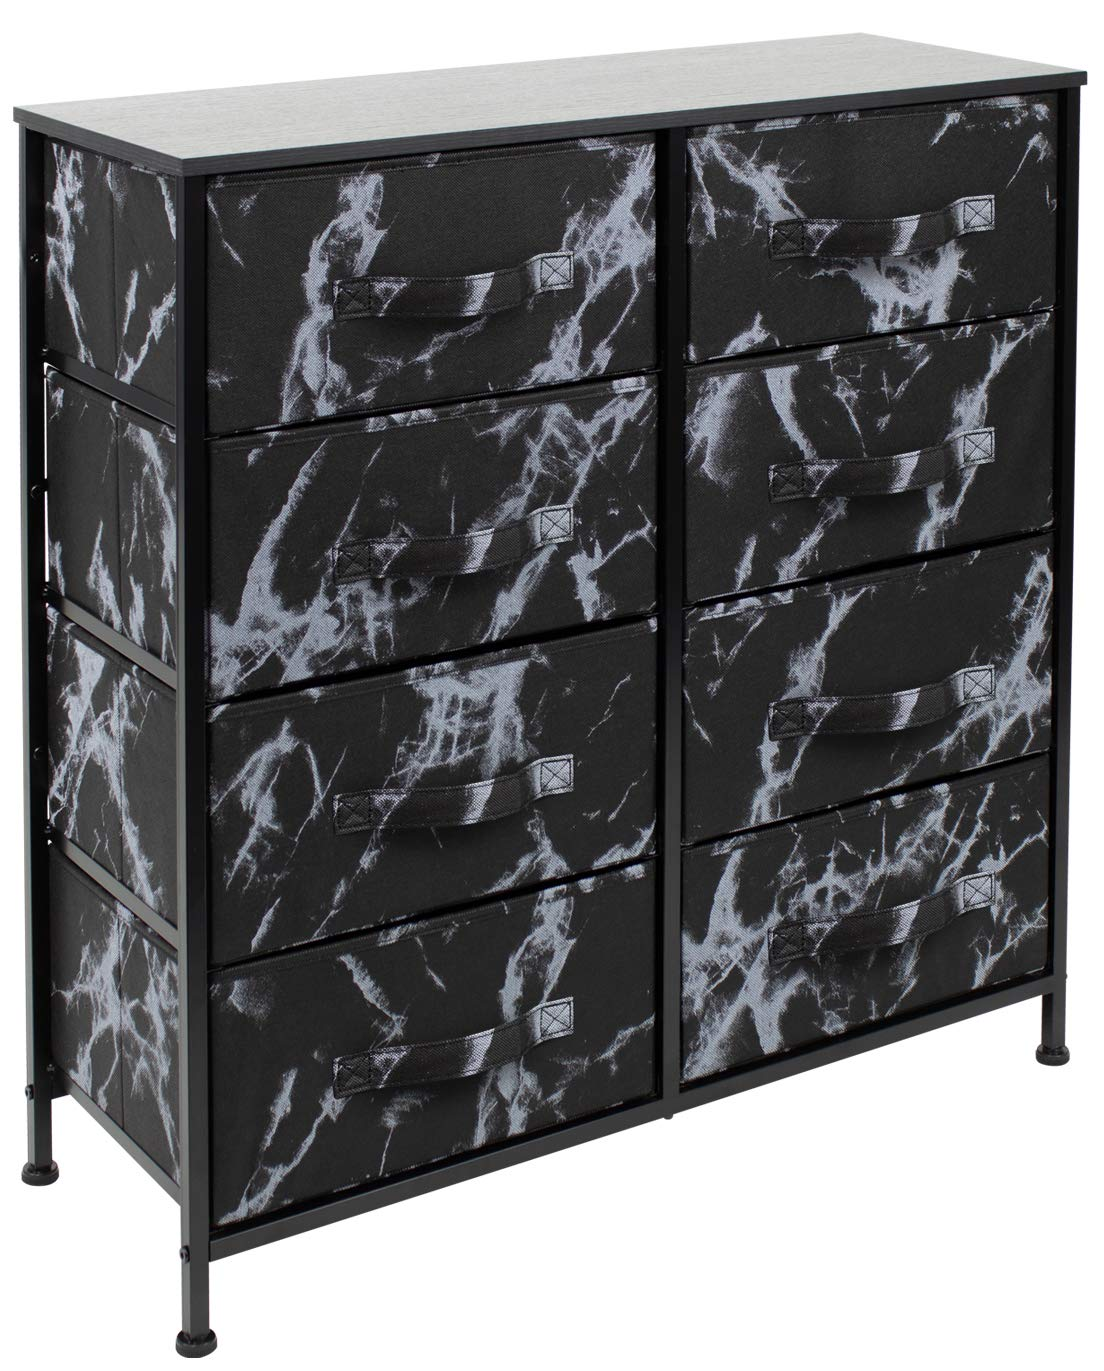 Sorbus Dresser with 8 Drawers - Furniture Storage Chest Tower Unit for Bedroom, Hallway, Closet, Office Organization - Steel Frame, Wood Top, Easy Pull Fabric Bins (Marble Black – Black Frame)